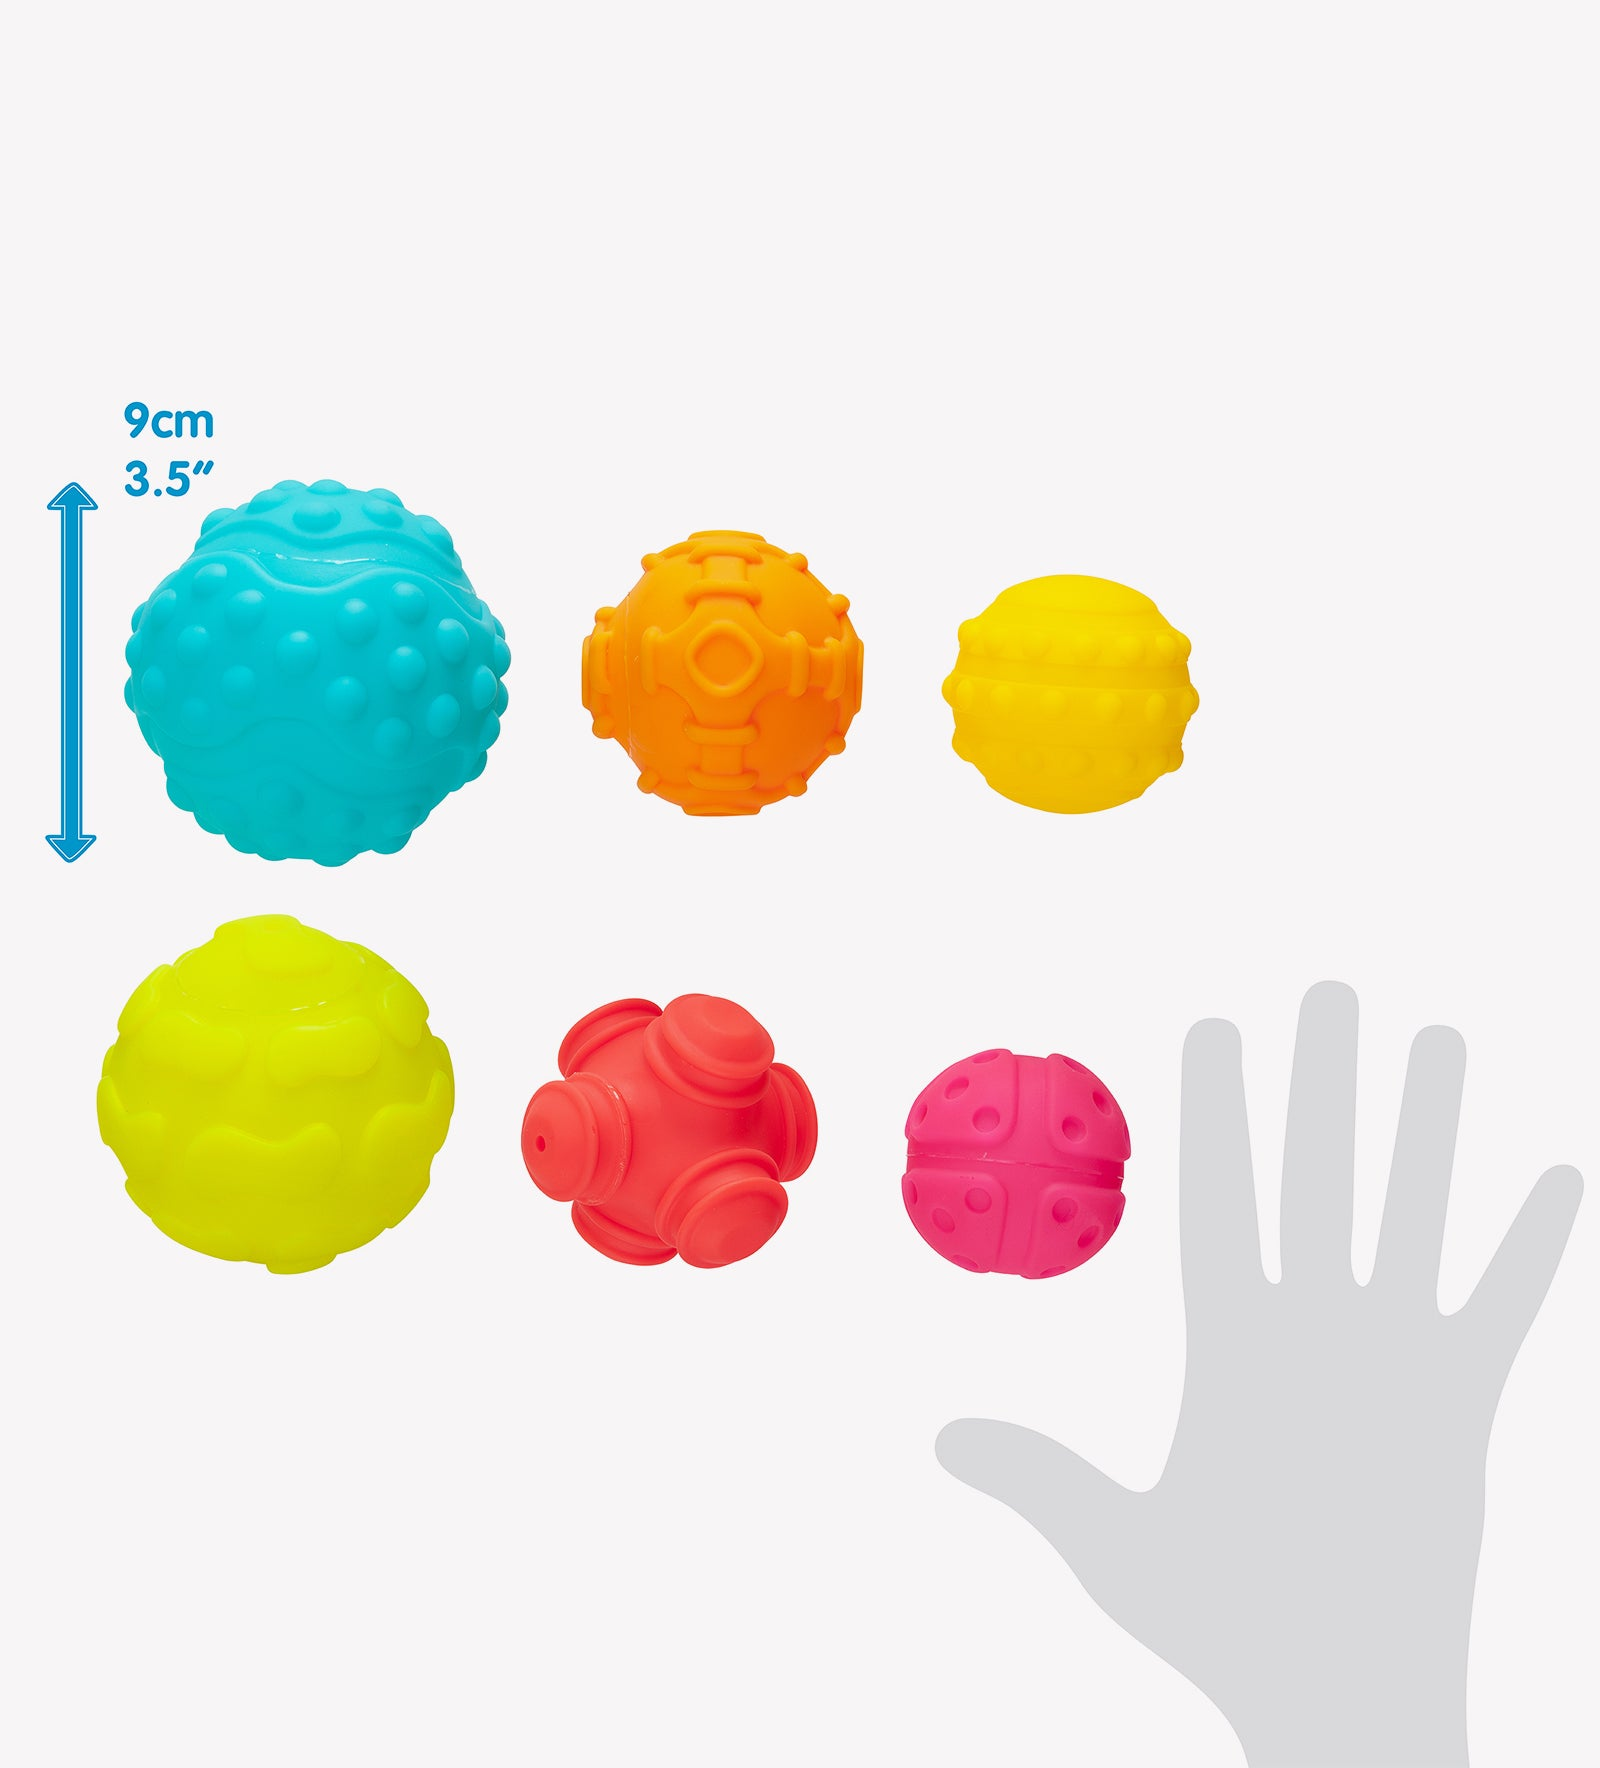 Playgro textured ball for toddlers size comparison to human hands